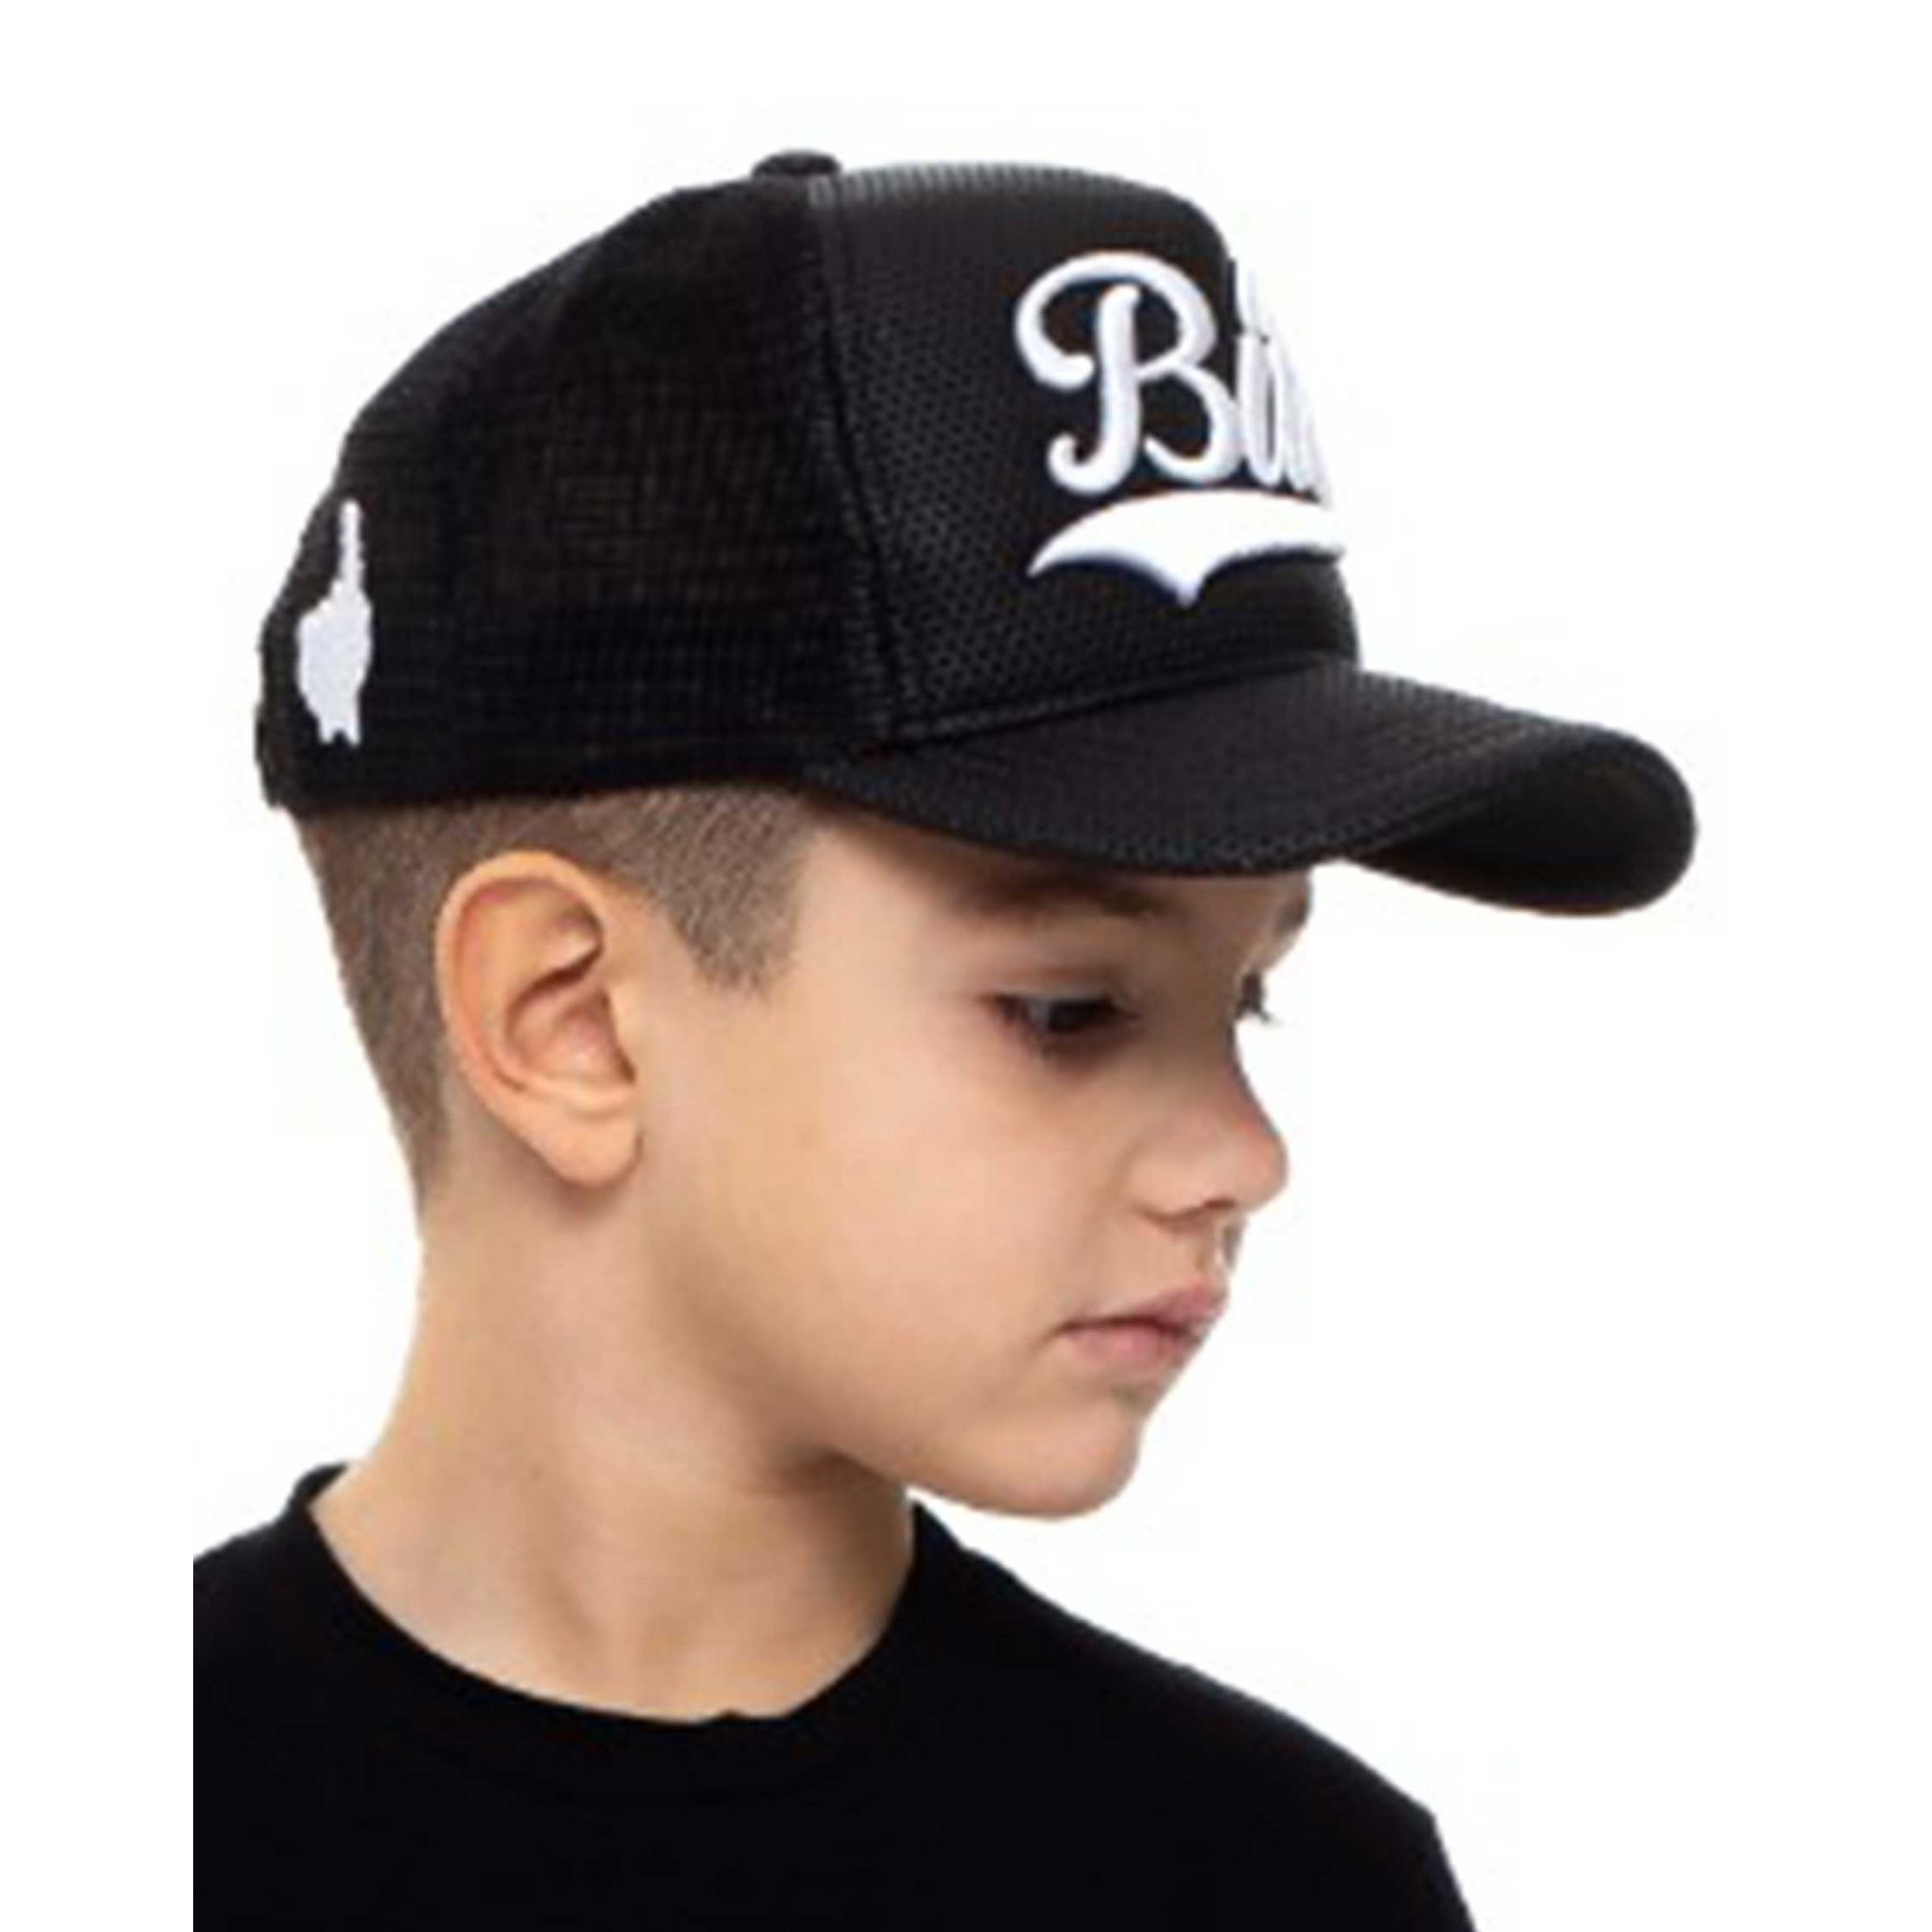 Boné Buh TBT Kids Trucker Black